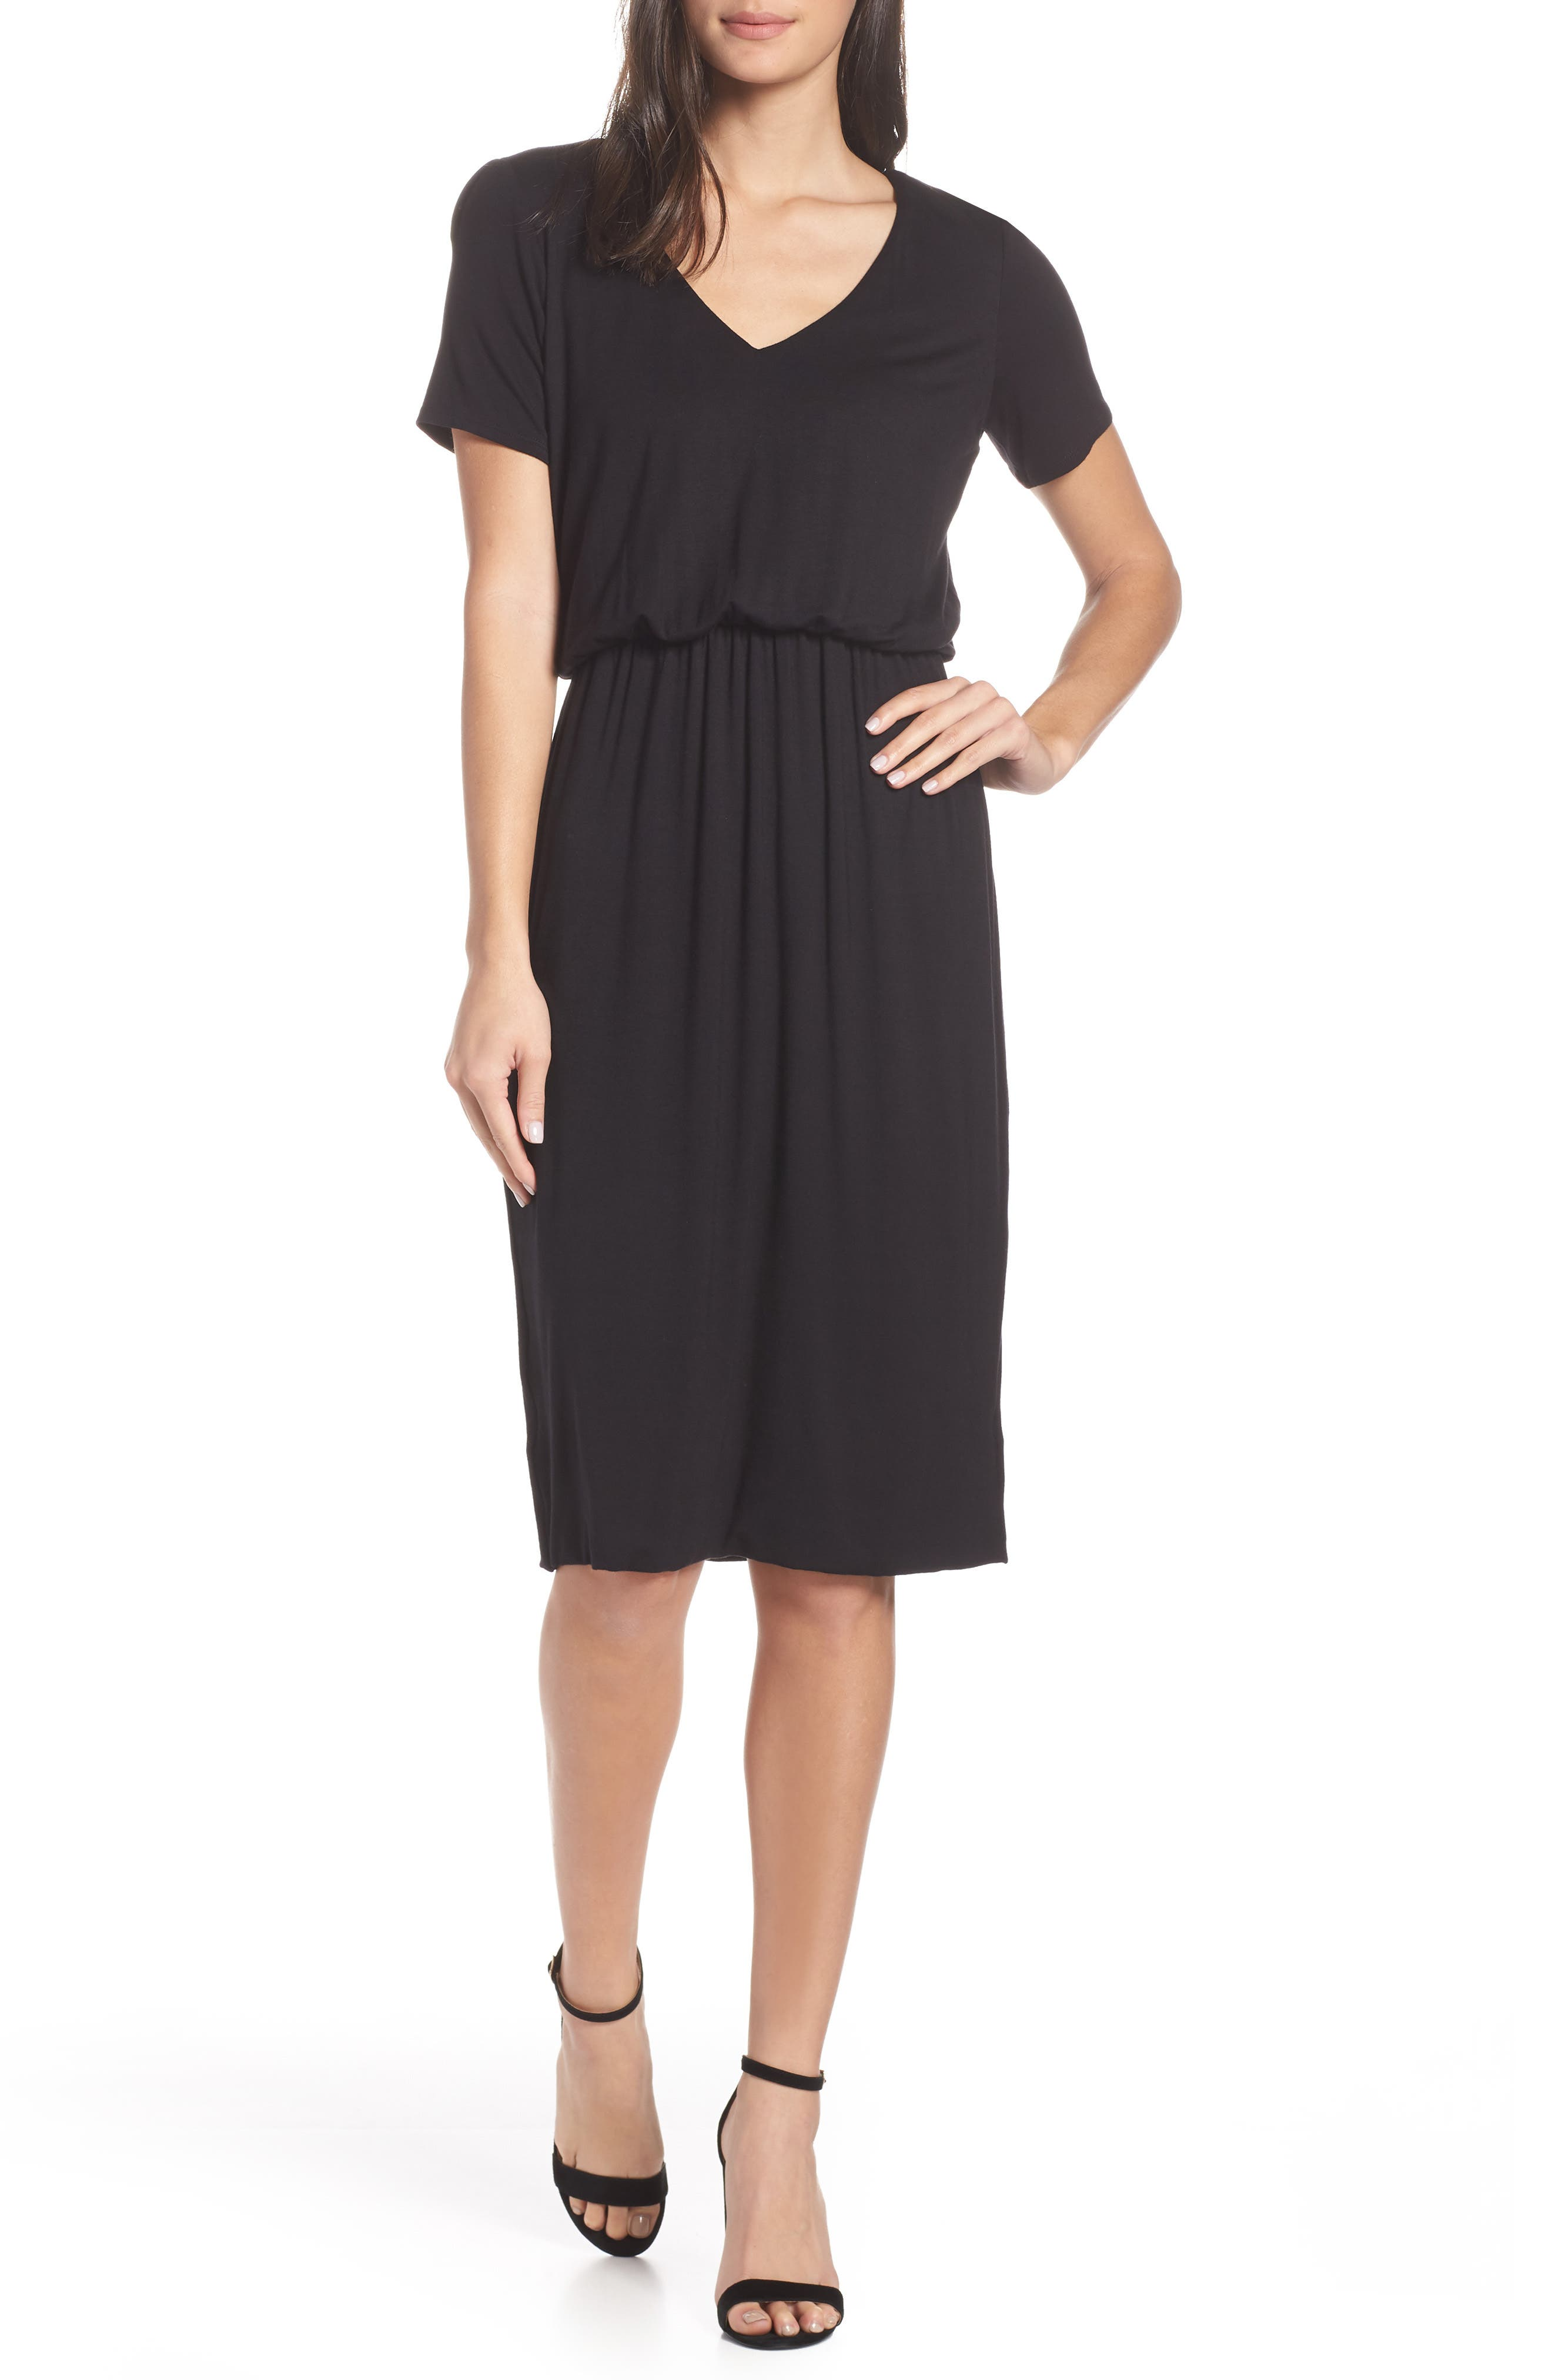 CHARLES HENRY Bloused Knit Dress in Black